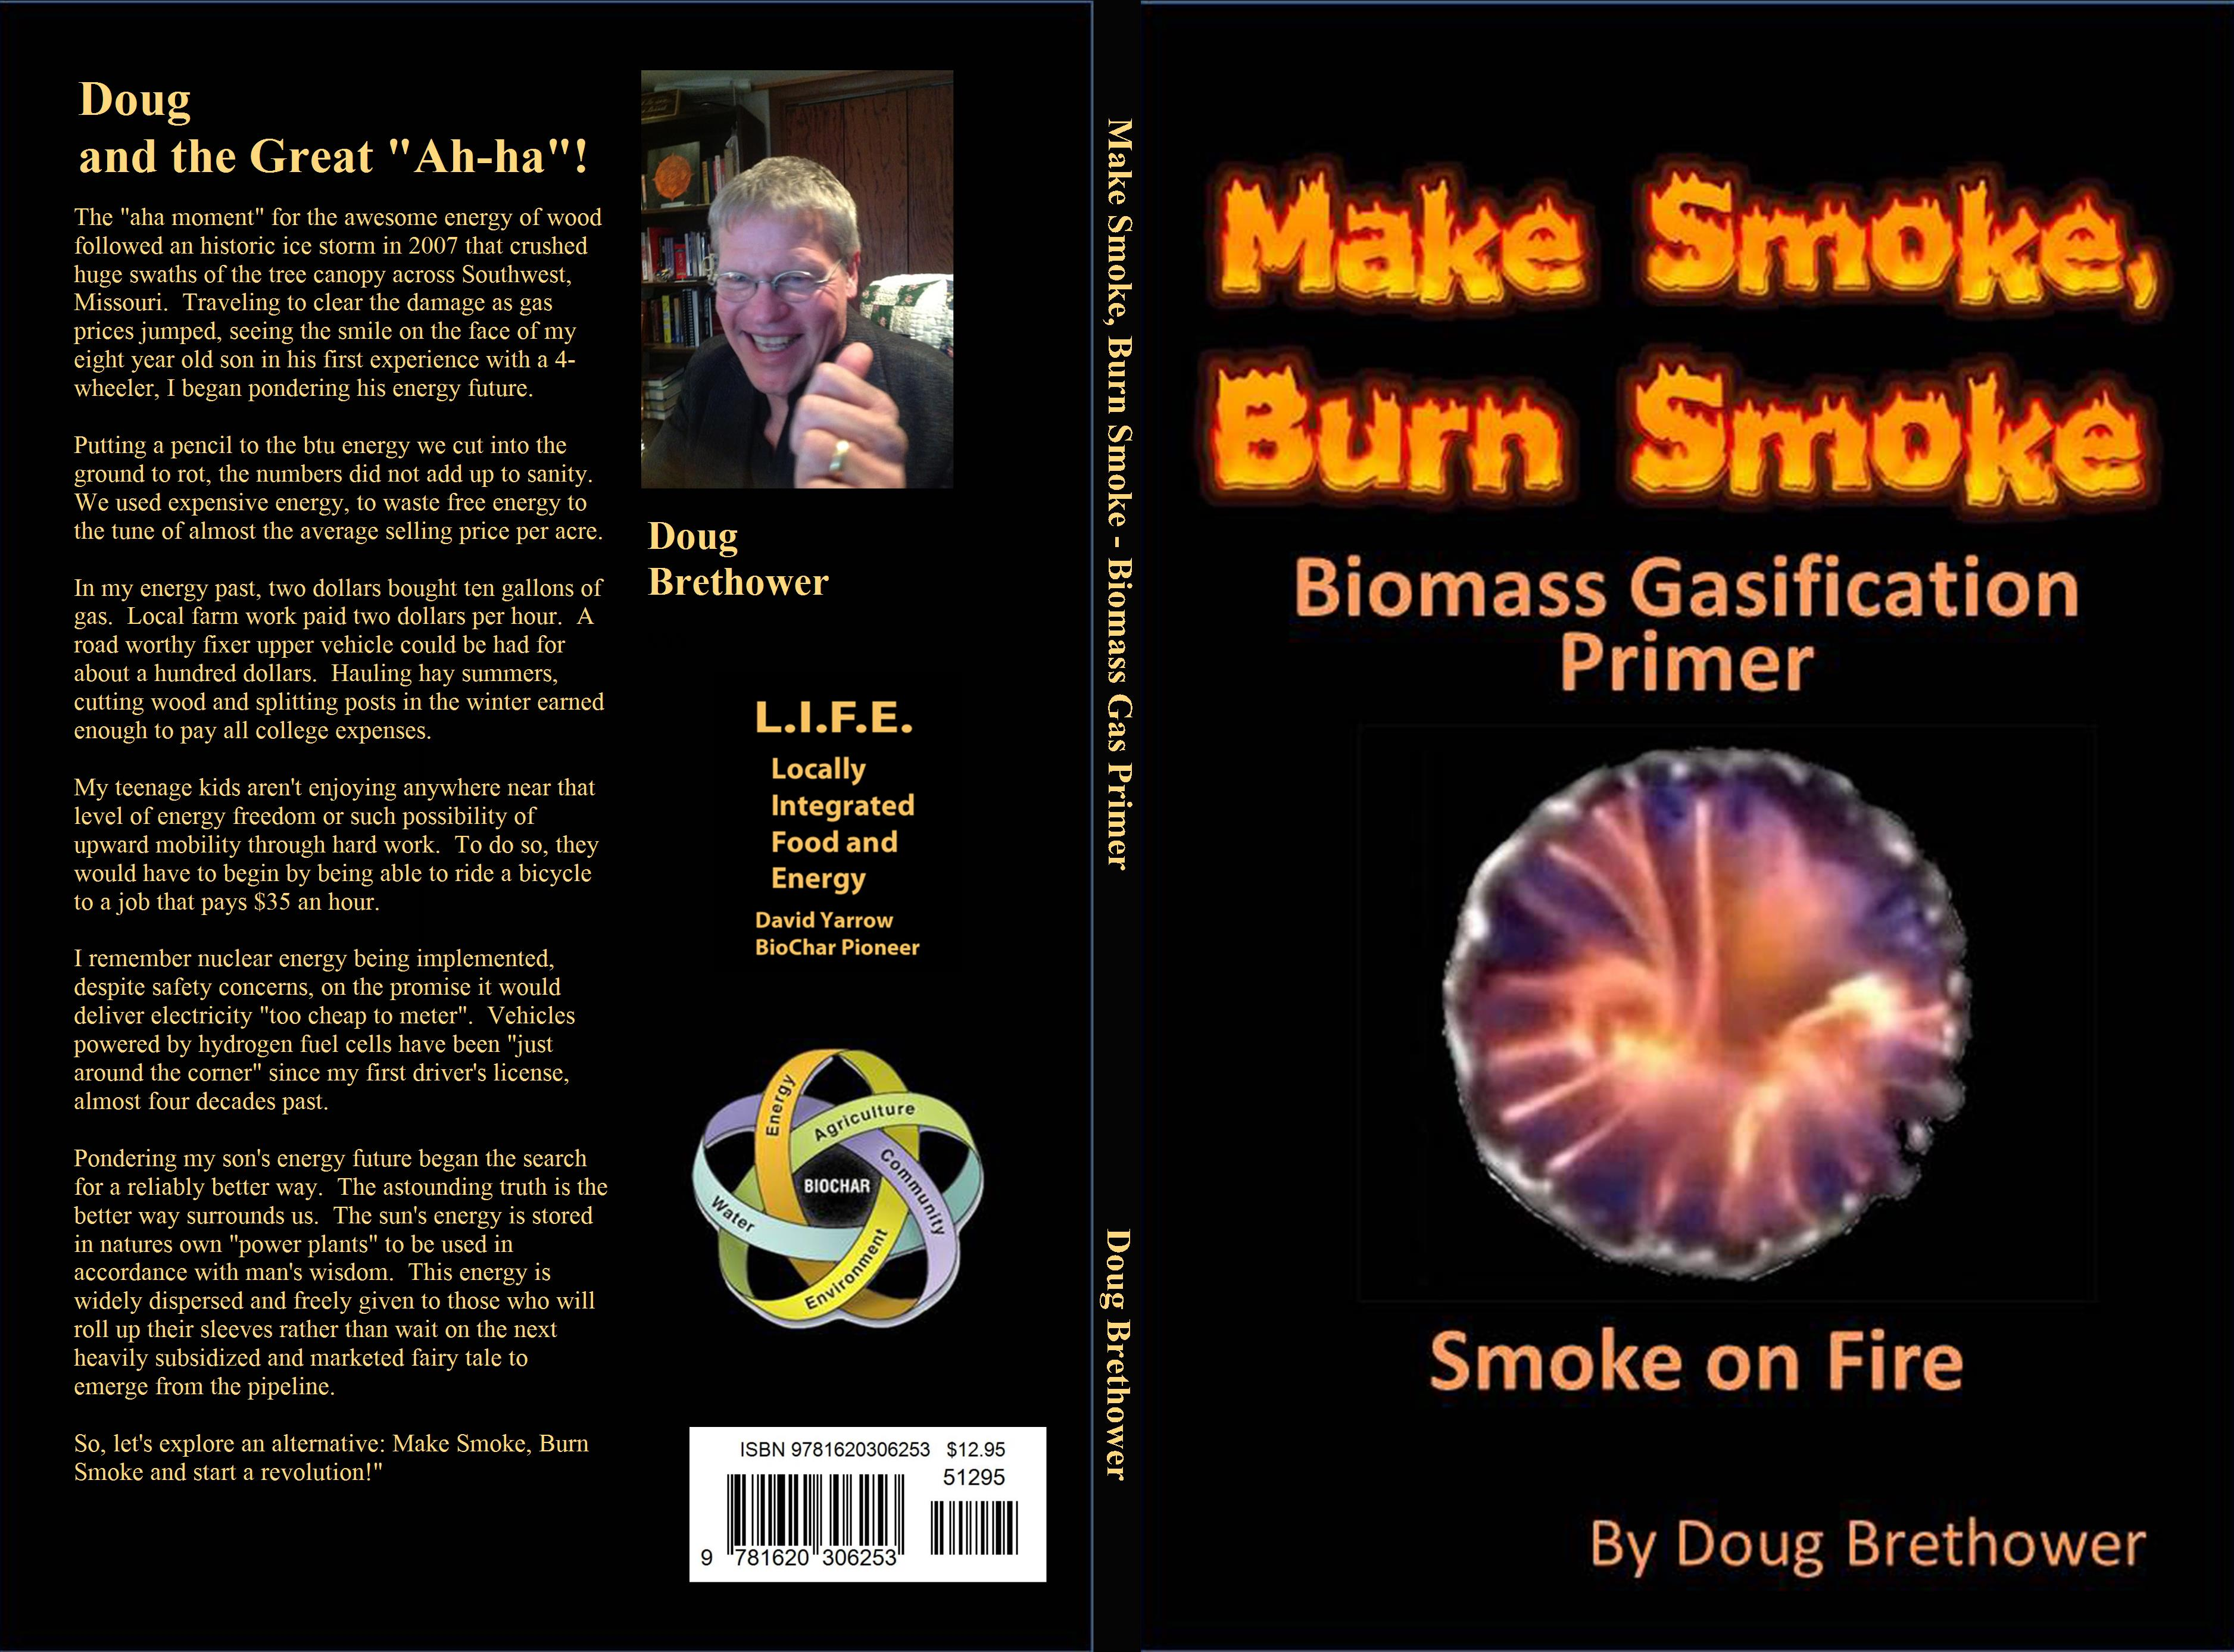 Make Smoke, Burn Smoke cover image